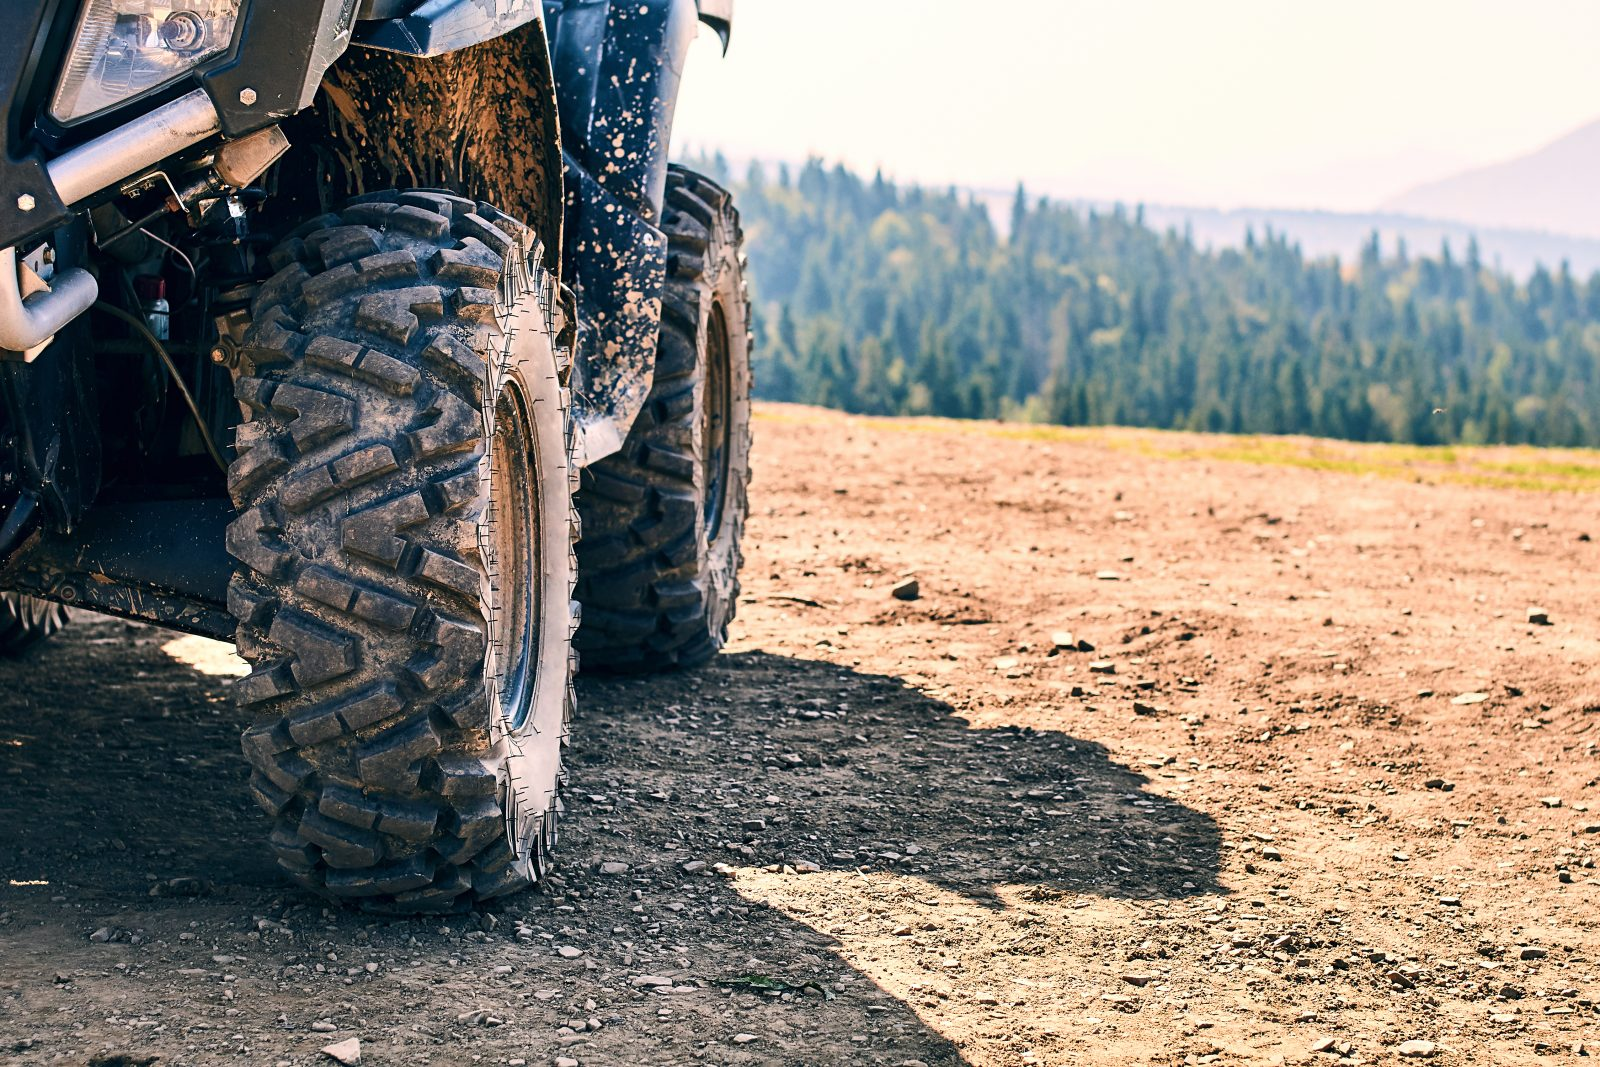 Getting Your ATV Ready for Springtime Fun | Gold Eagle